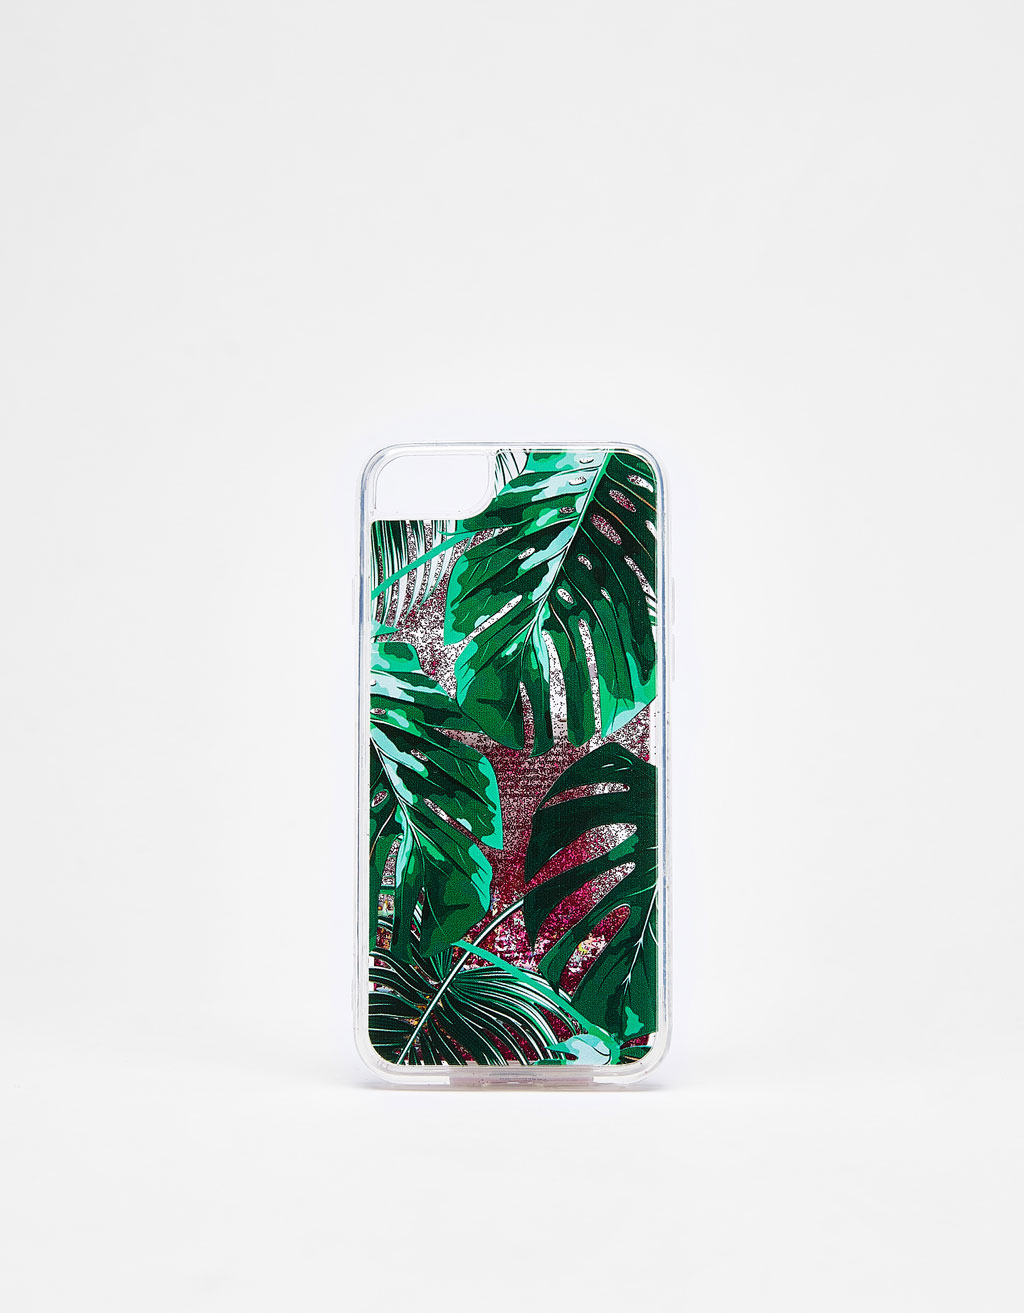 Carcasa tropical iPhone 6/6s/7/8